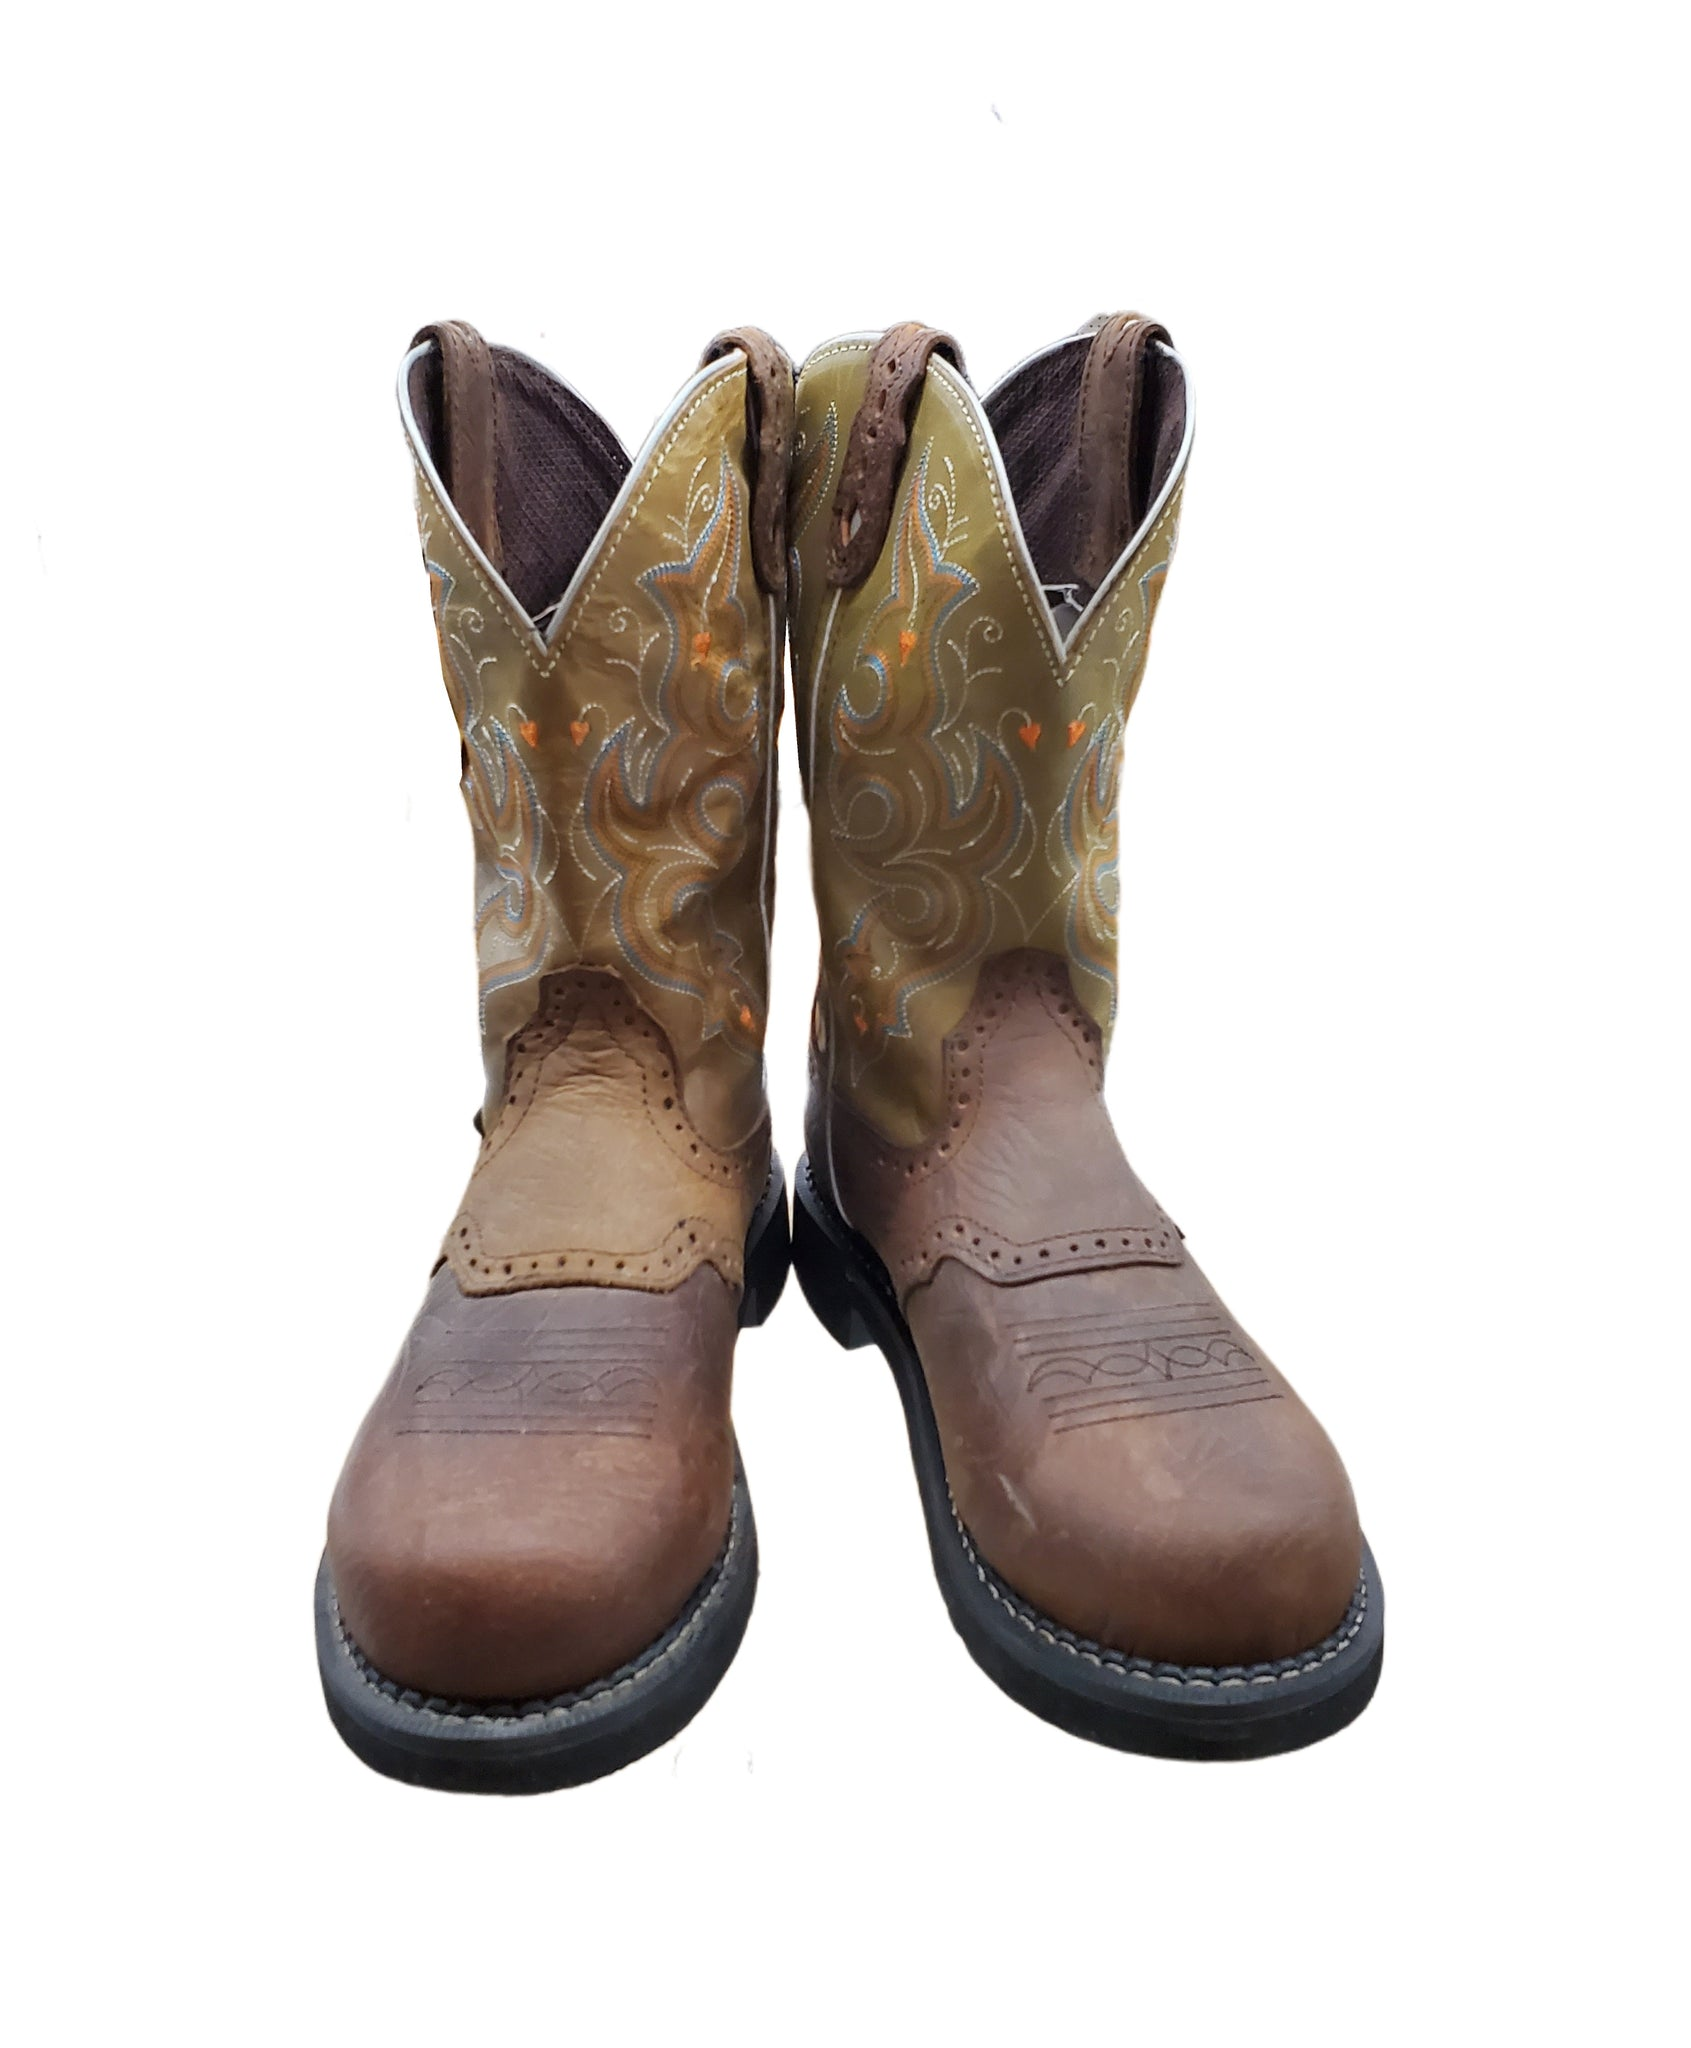 Women's Green Gypsy Collection Work Boots, Comp Toe